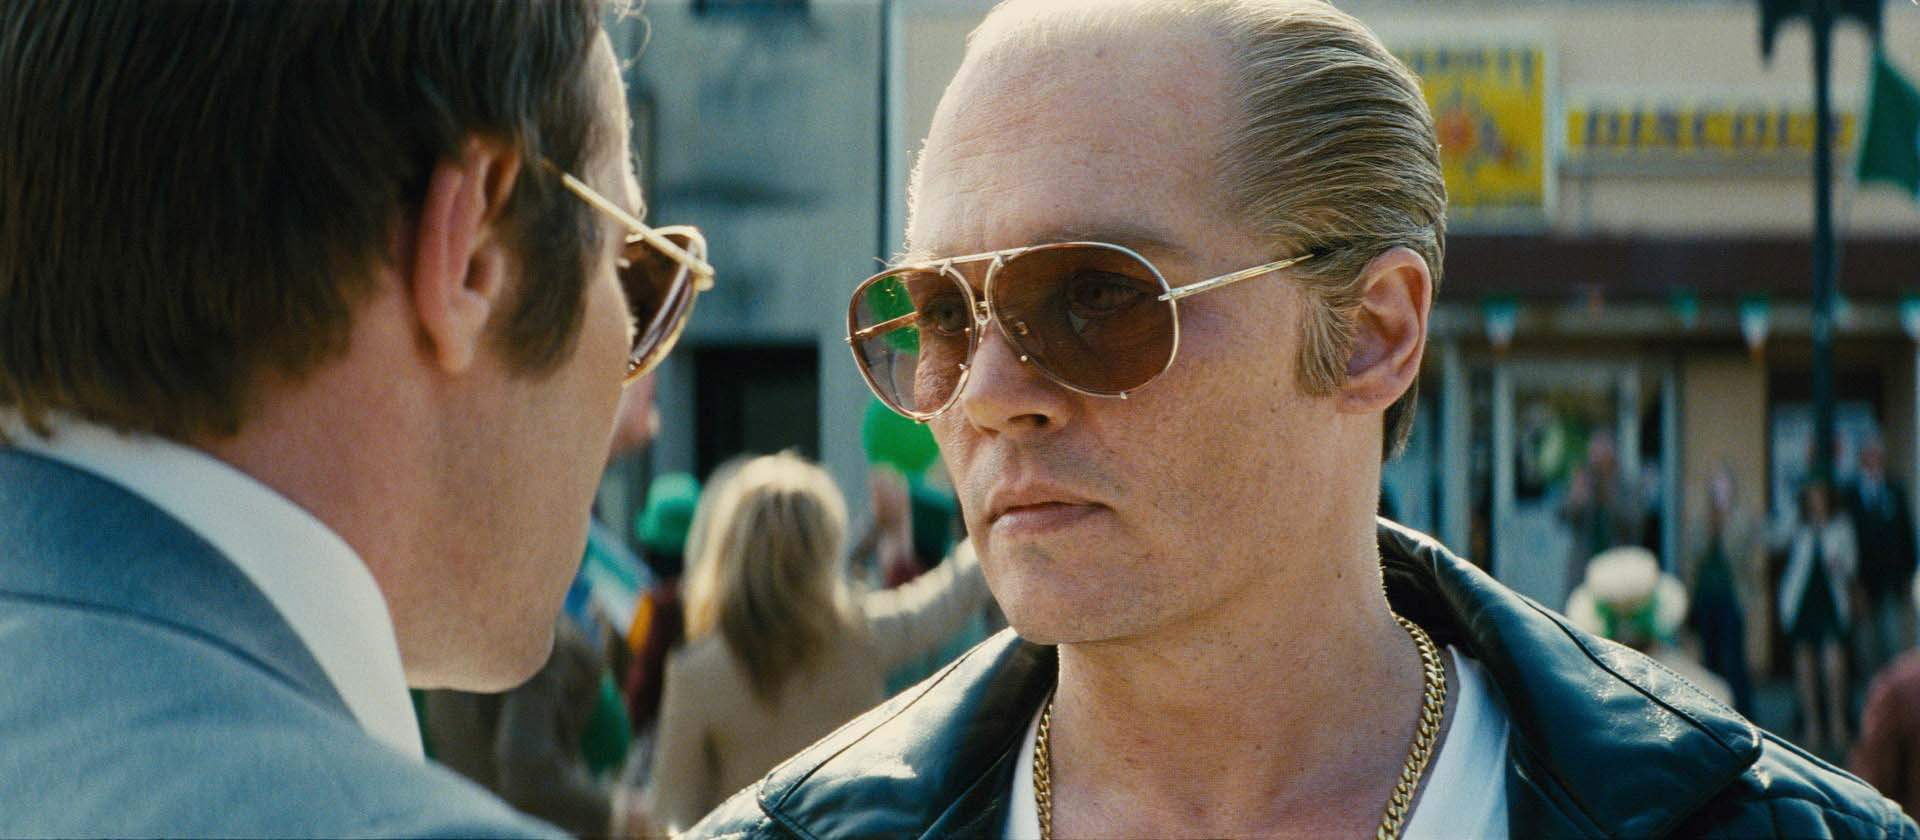 During production, Depp bore such a striking resemblance to Bulger that he reportedly scared some local residents